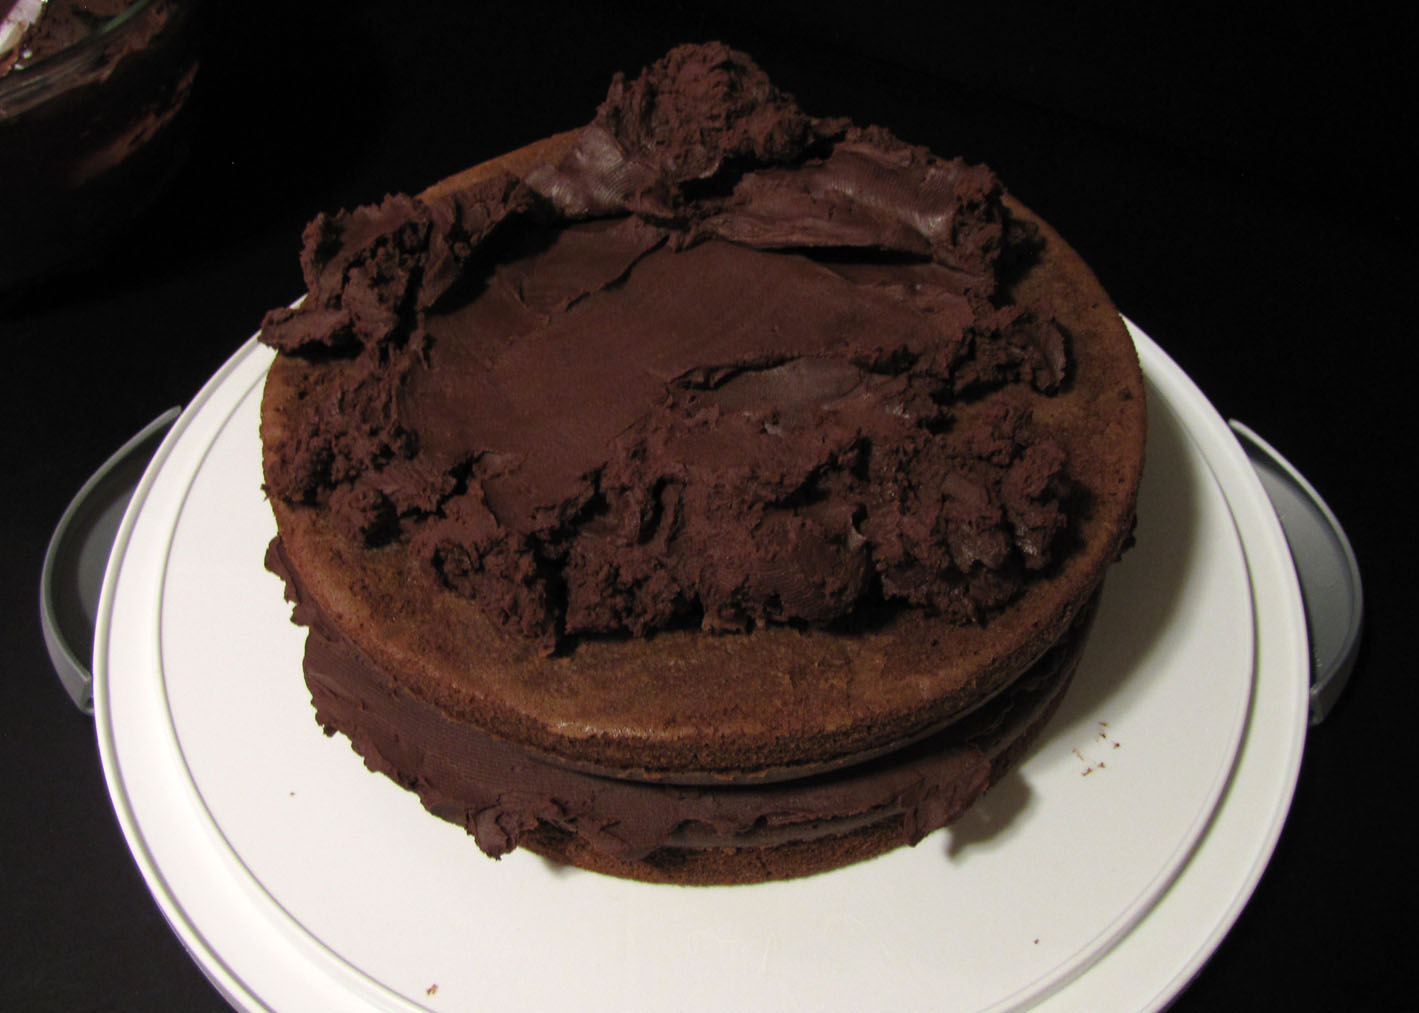 ... Like Food in Here: Chocolate Stout Layer Cake with Chocolate Frosting